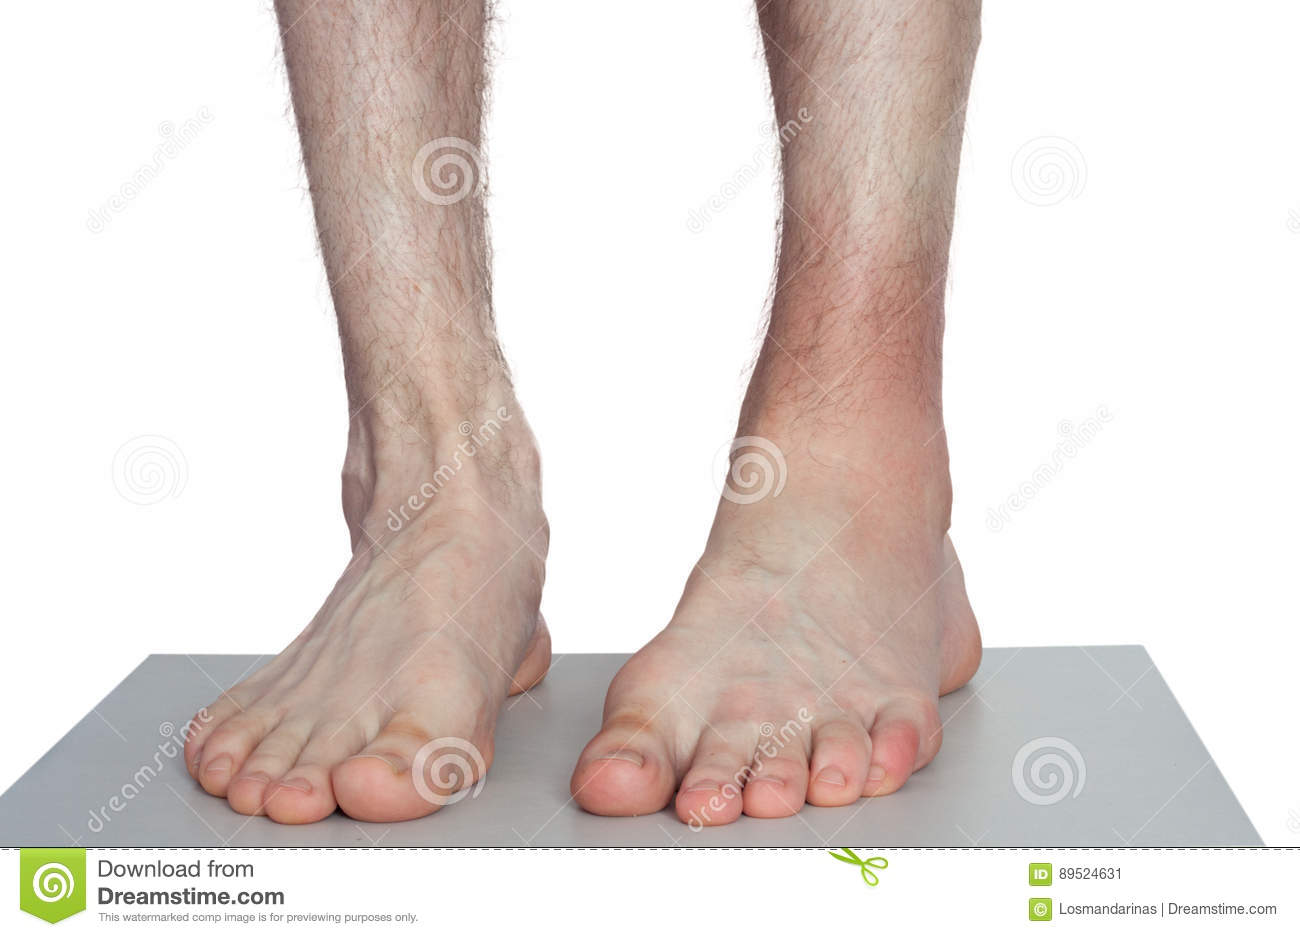 Ankle injury stock image. Image of anatomy, background - 89524631